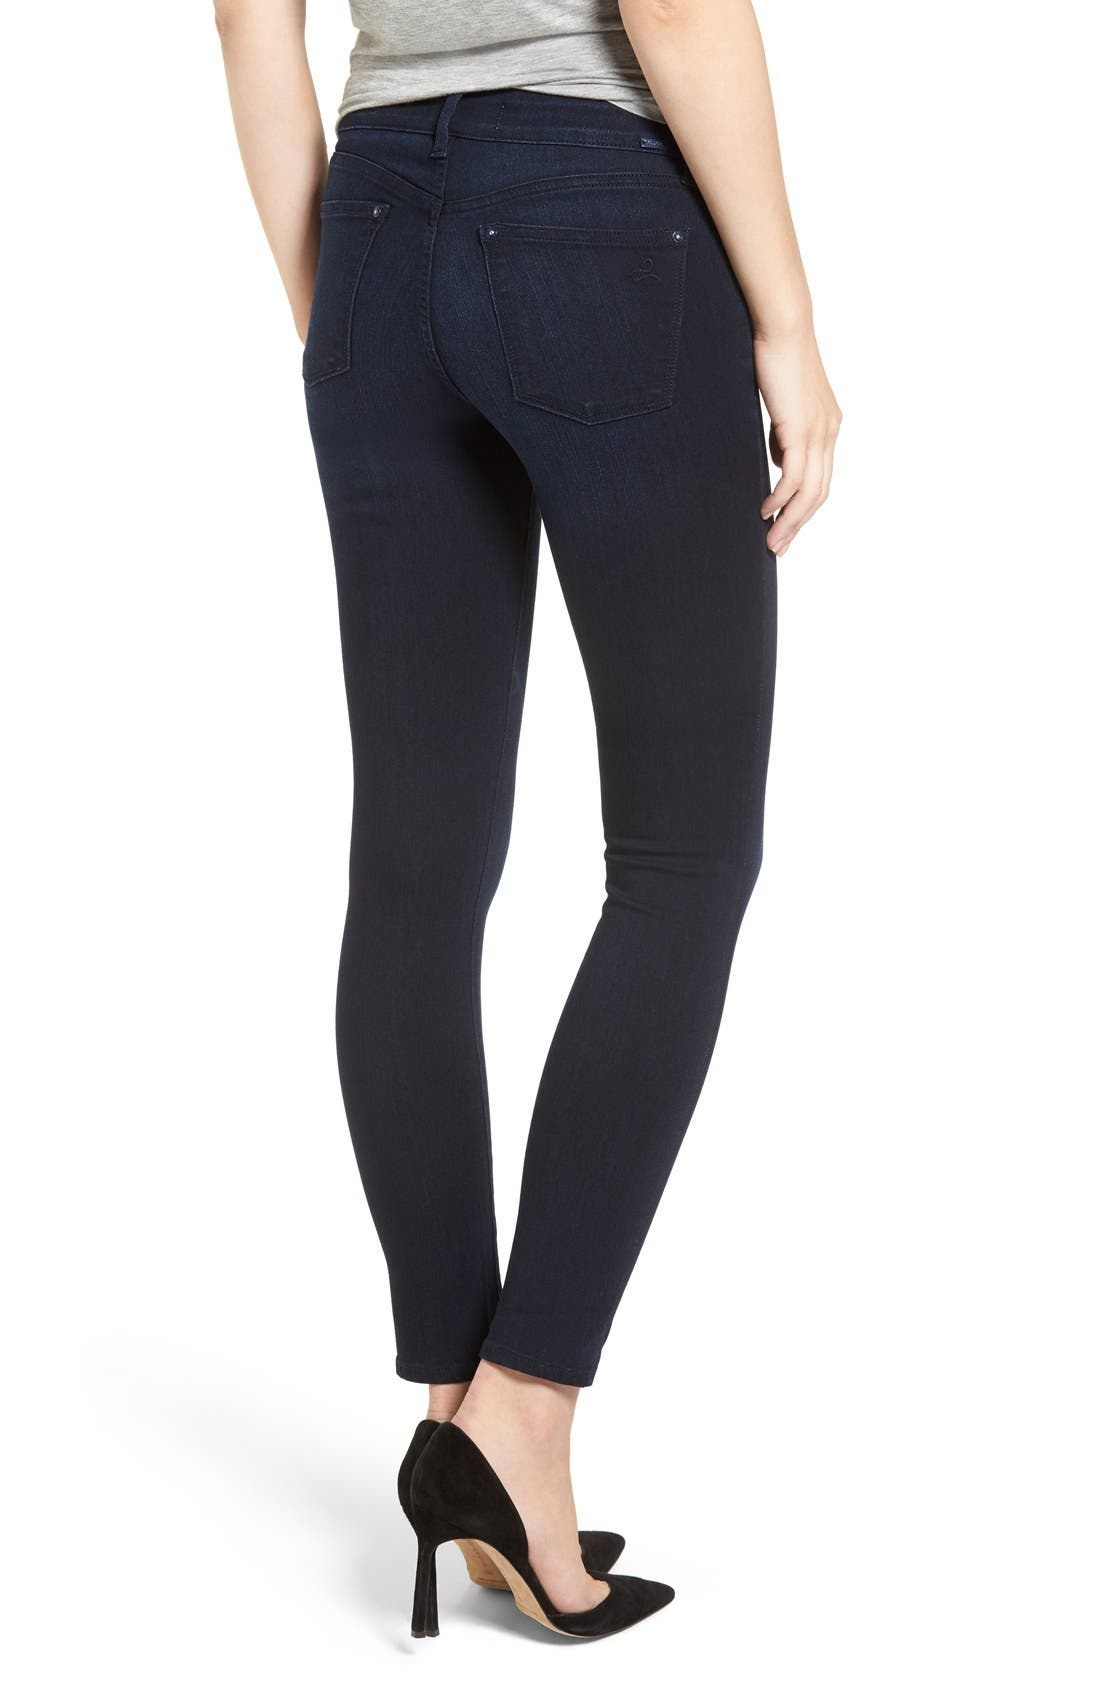 Alternate Image 2  - DL1961 'Emma' Power Legging Jeans (Token)